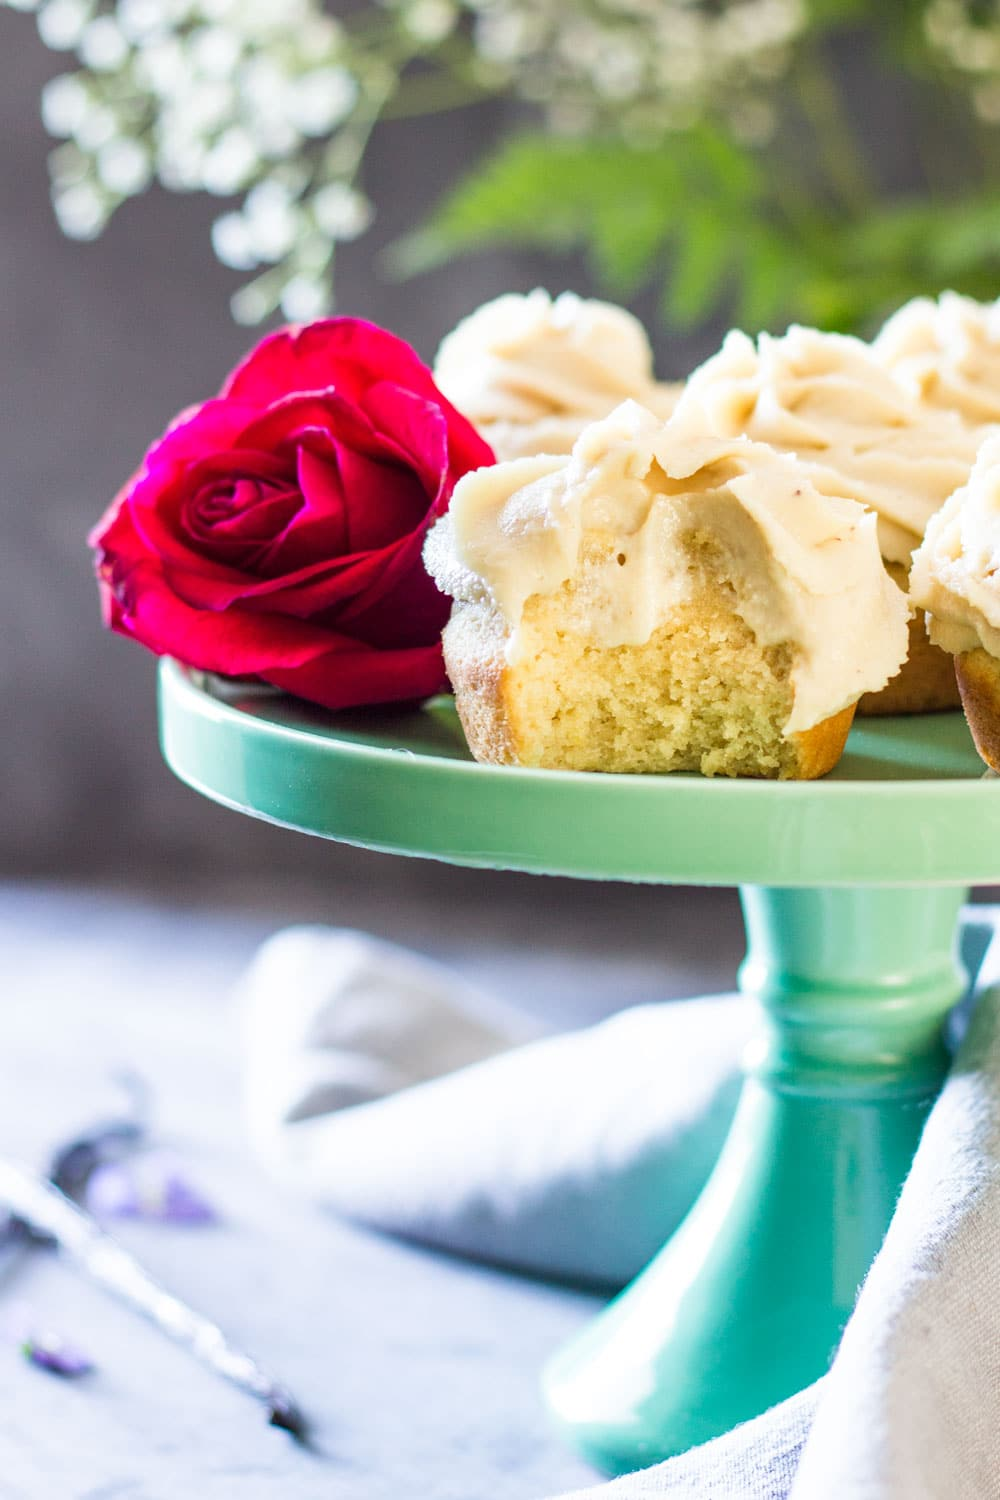 Which also looks amazing by the way if you're looking for yet another gluten-free cupcake recipe that tastes amazing :)